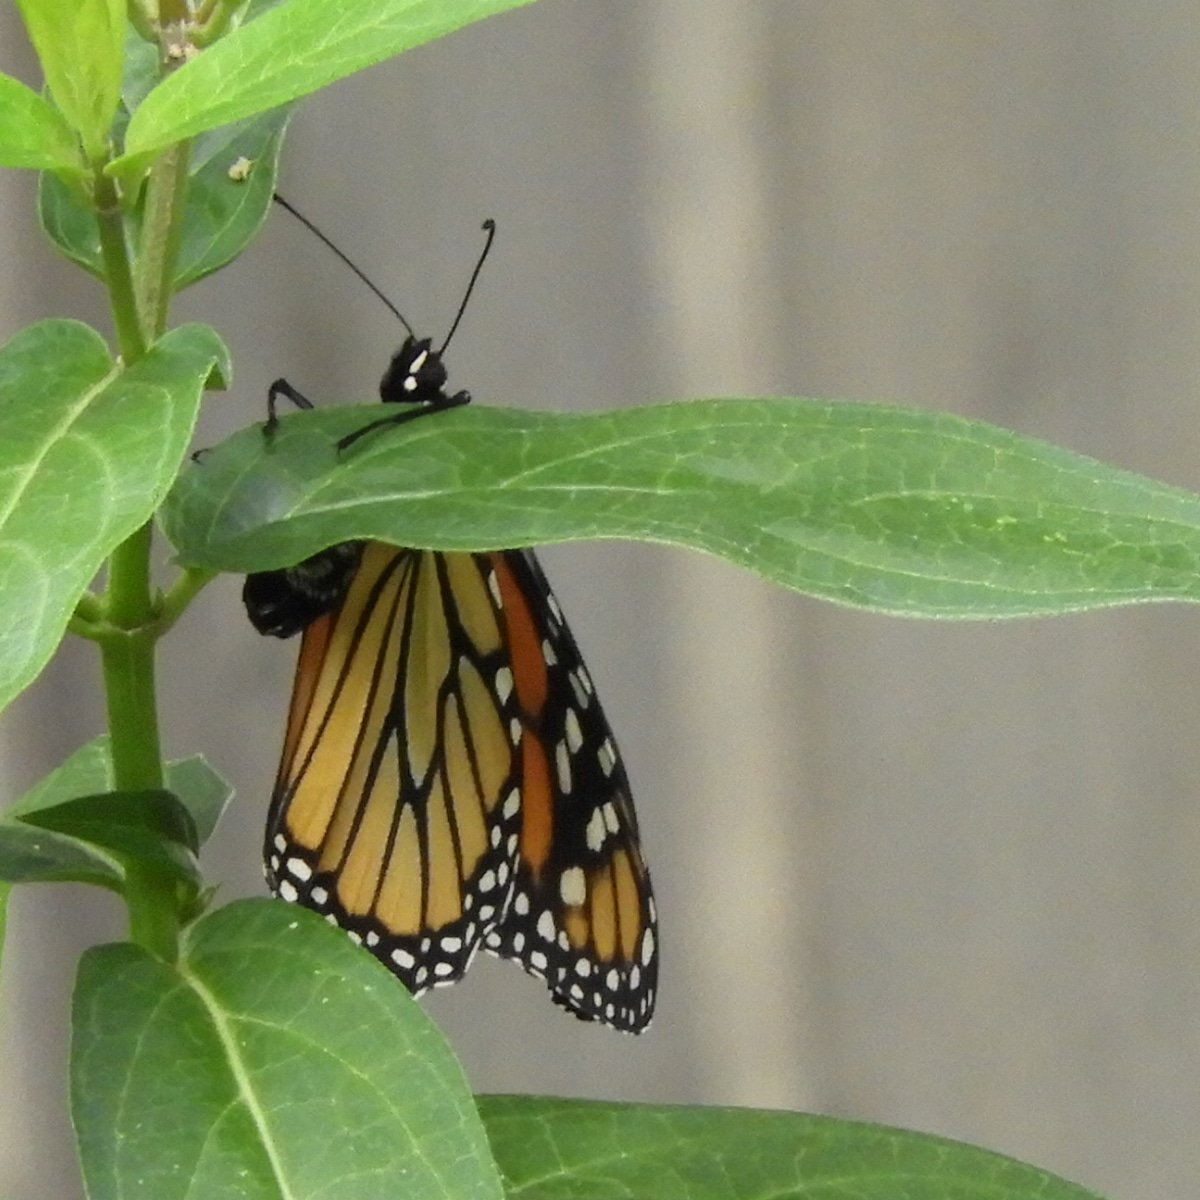 A female monarch butterfly hanging on as she deposits her eggs on the swamp milkweed I have growing in my garden 💓 I used a zoom lens and gave her plenty of space as I snapped a few pictures. I am in love with this shot!! #ilovemygarden #monarchbutterfly #monarchfood https://t.co/6TeorIqpMv